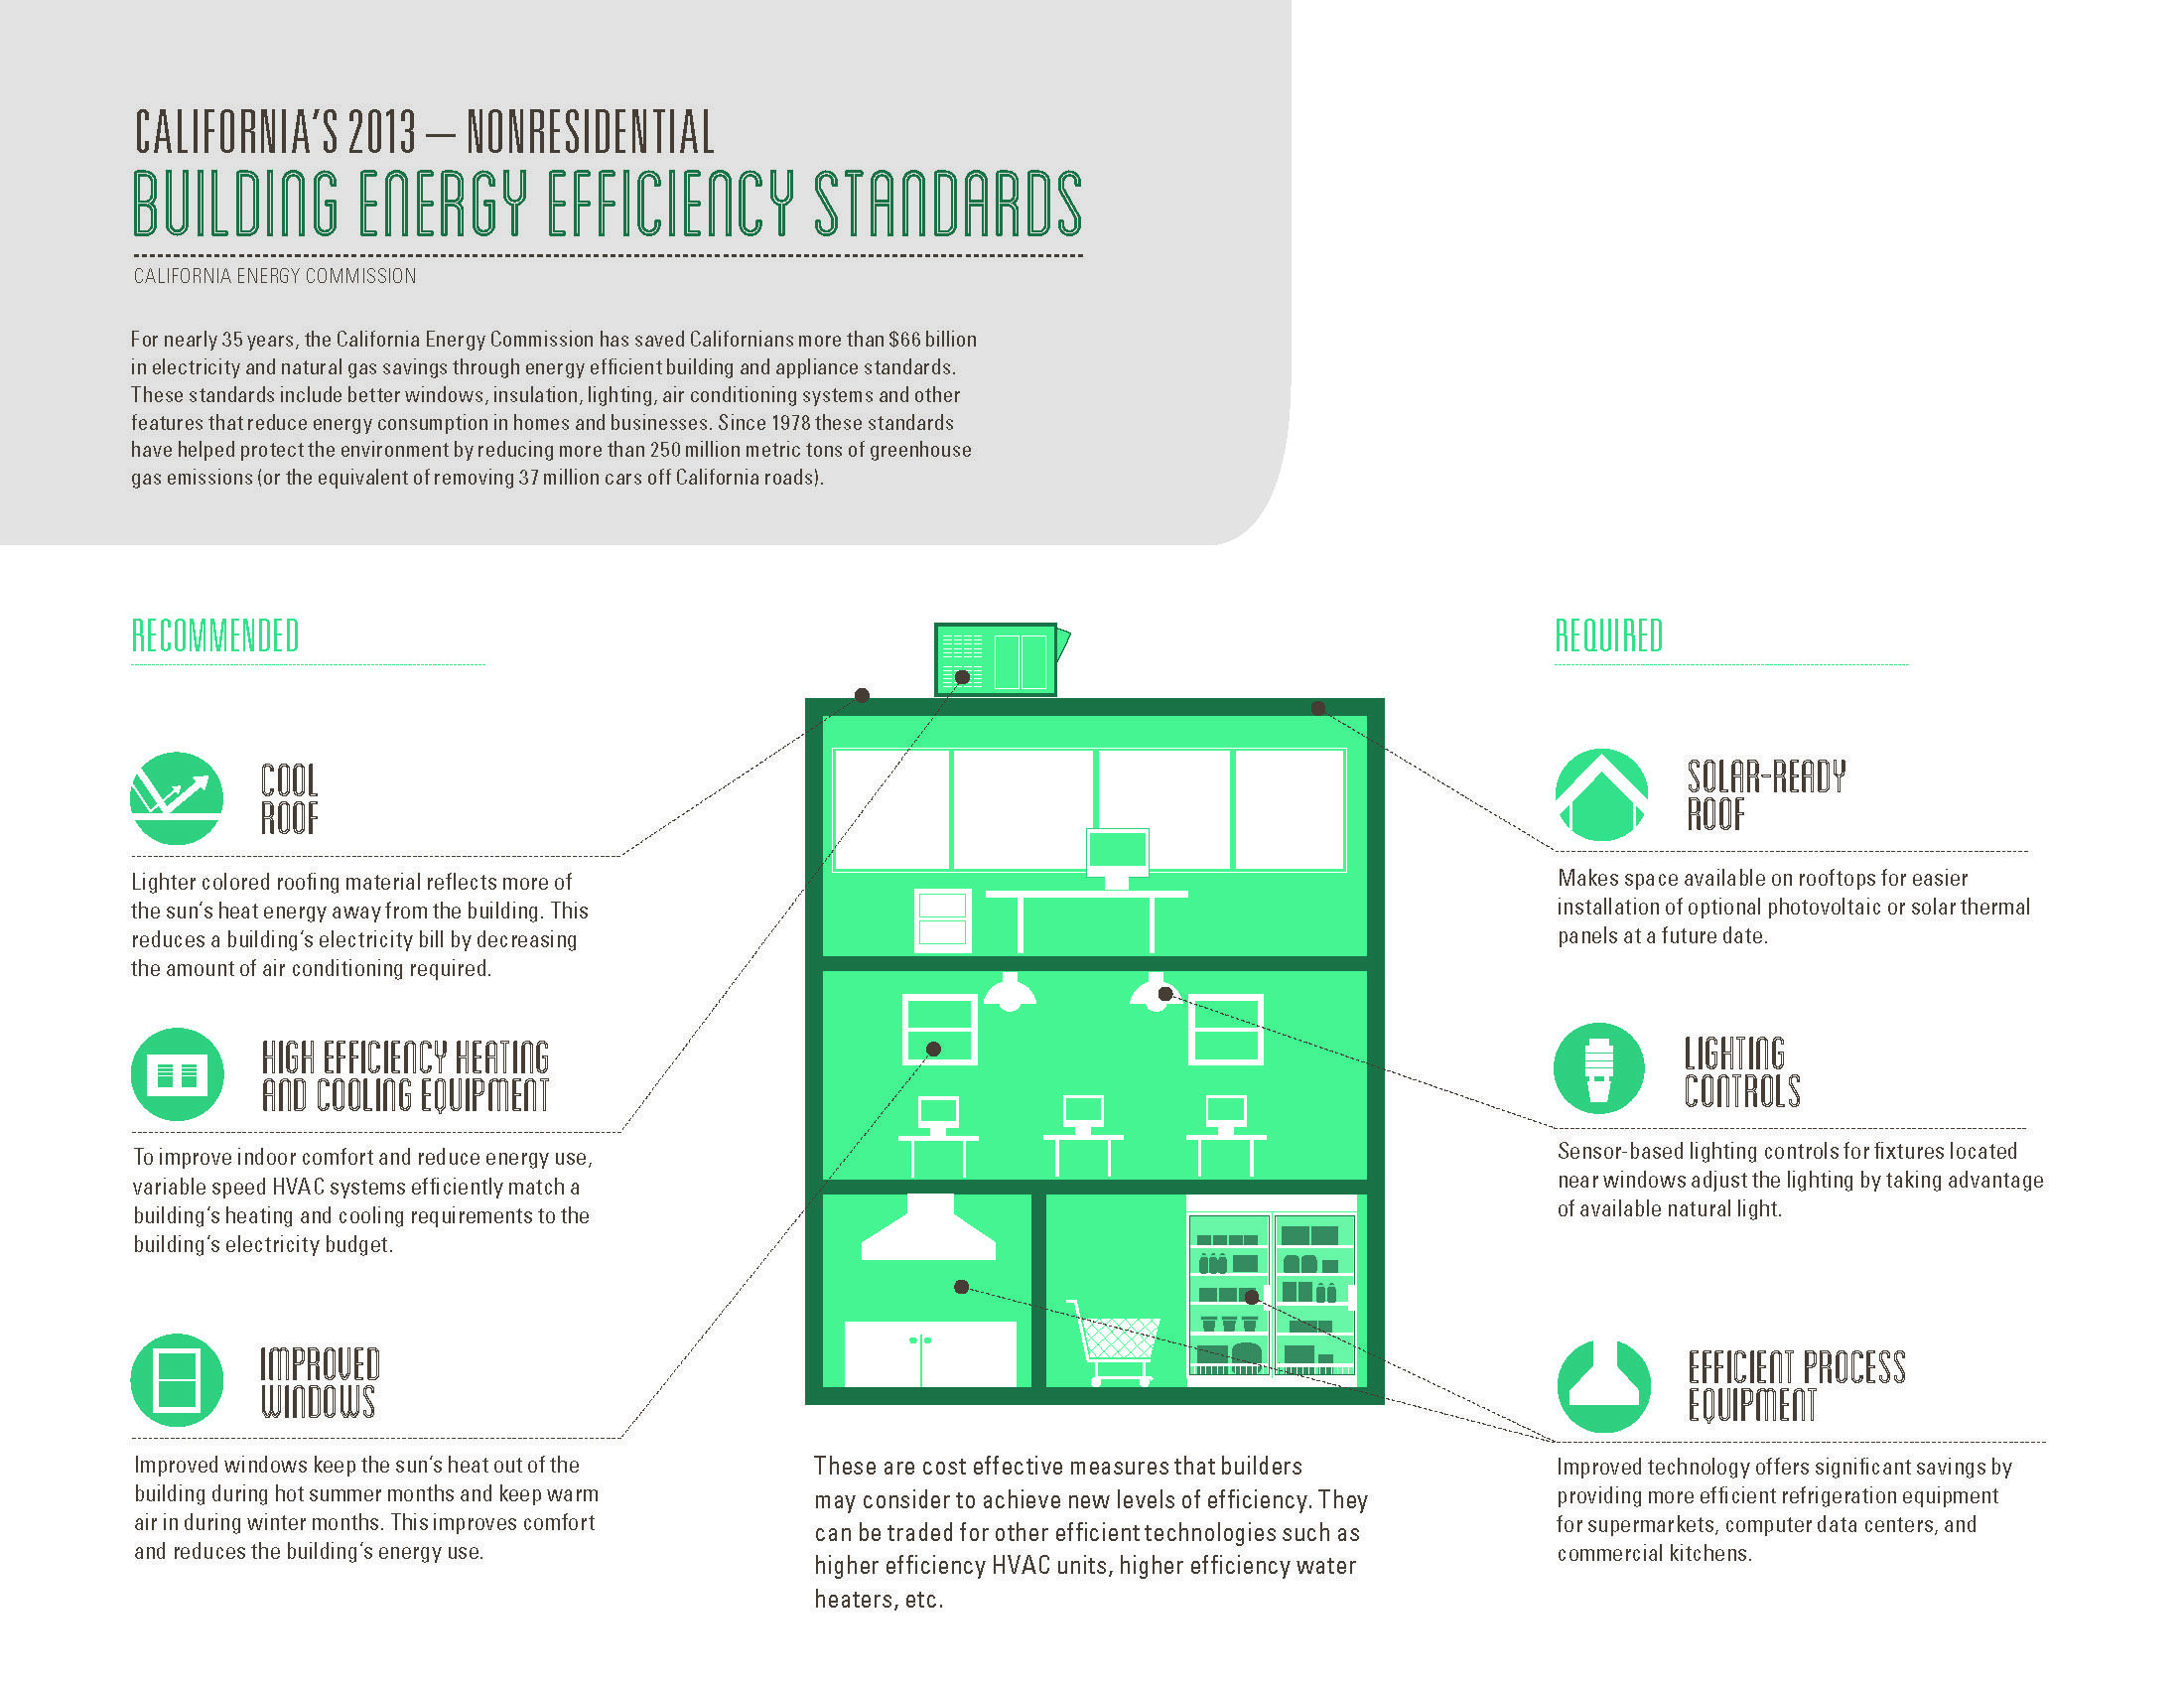 2013 California S Building Energy Efficiency Standards For Non Residential Infographic The 2013 Standards Improve Energy Efficient Buildings Energy Efficiency